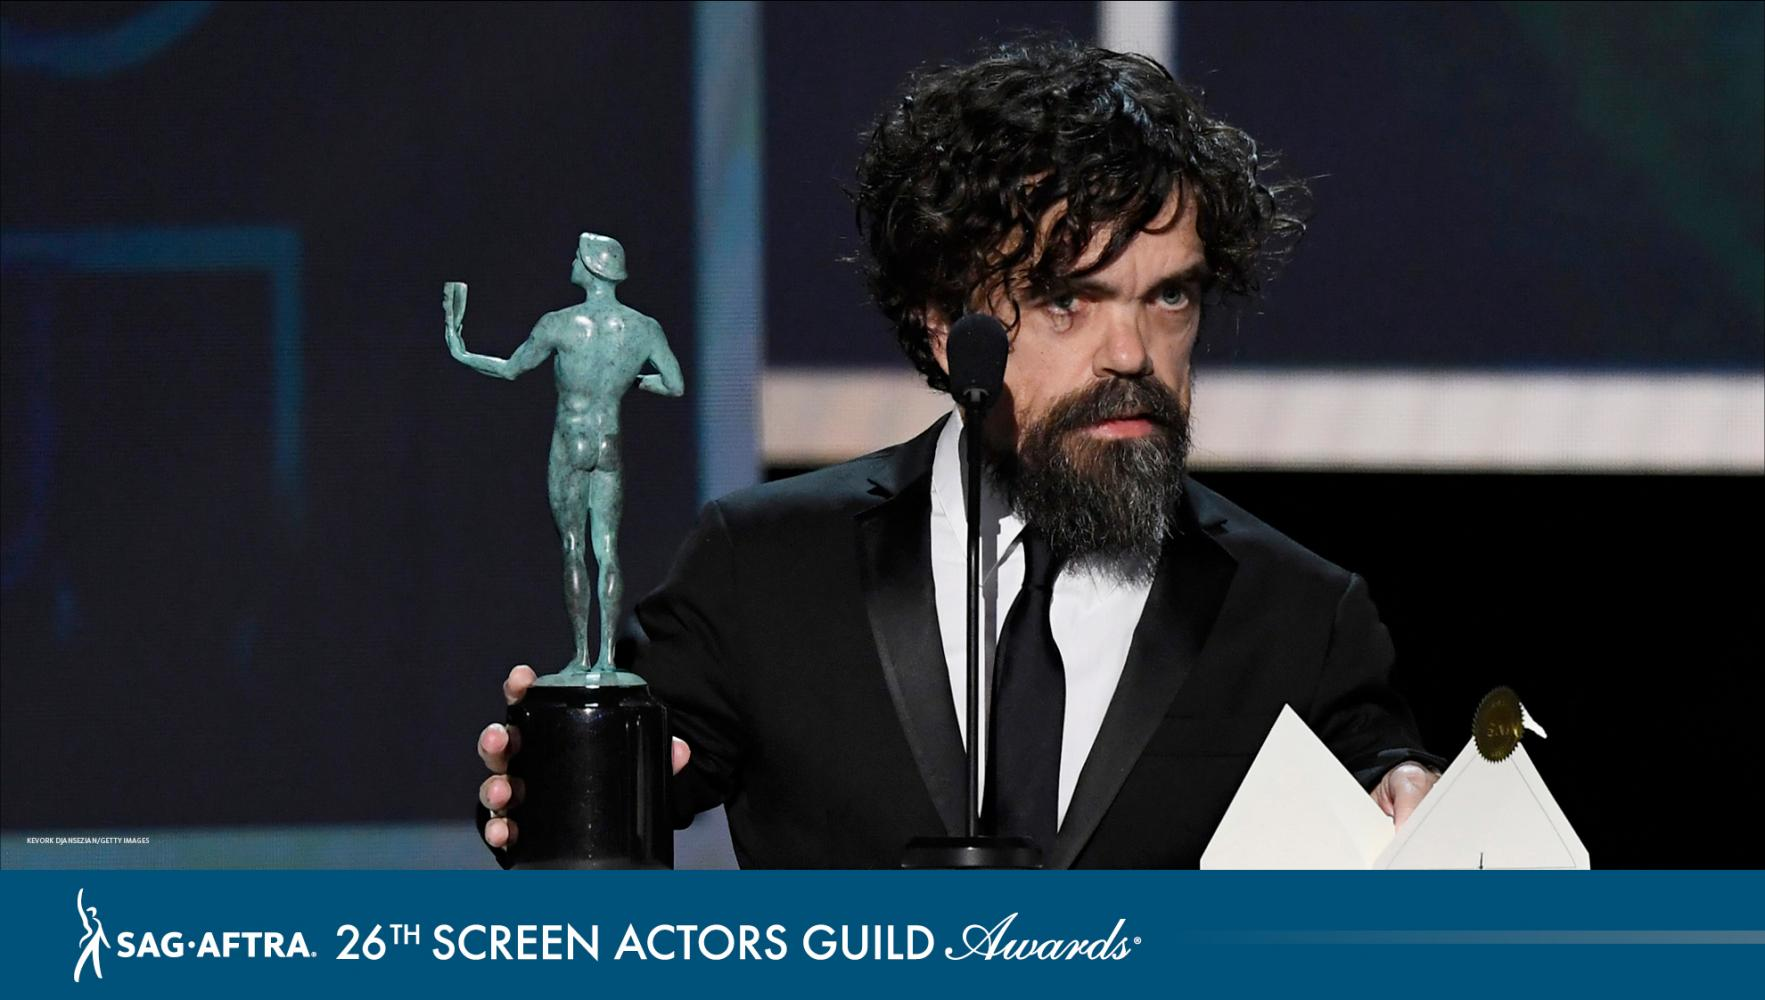 Dinklage on stage at podium with actor to his right on podium